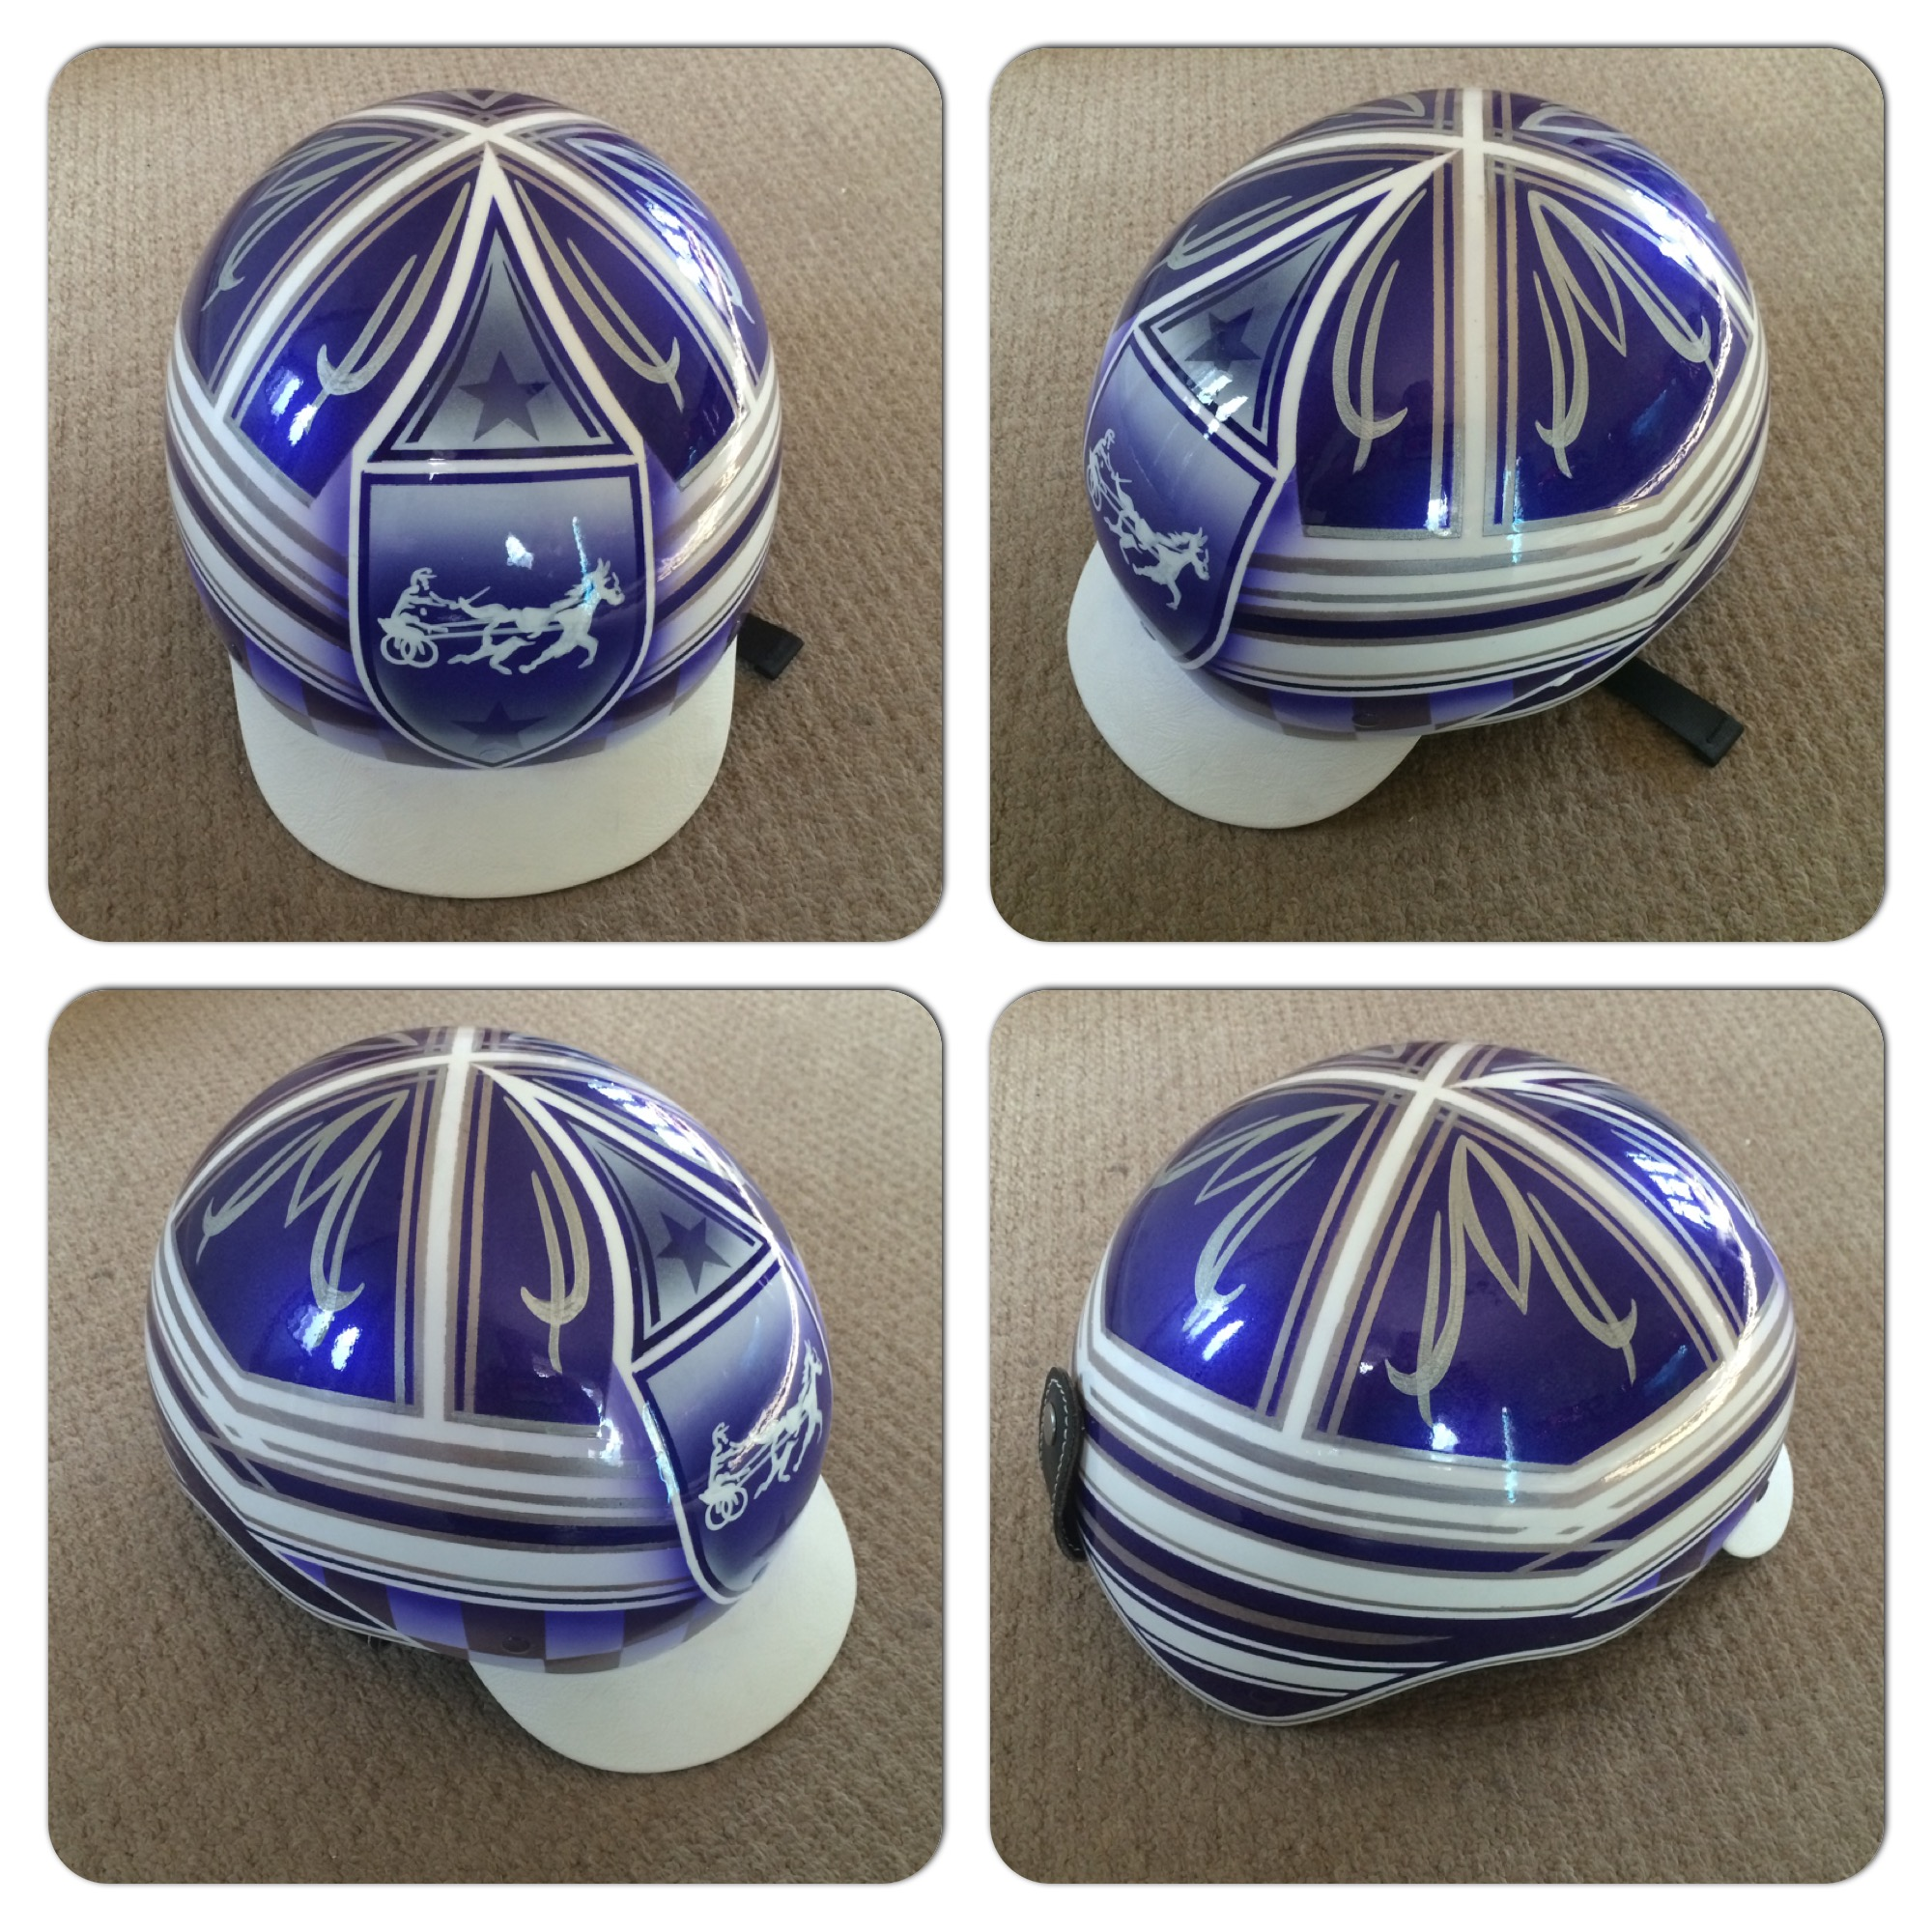 Custom Painted Trotting / Trap Racing Helmet